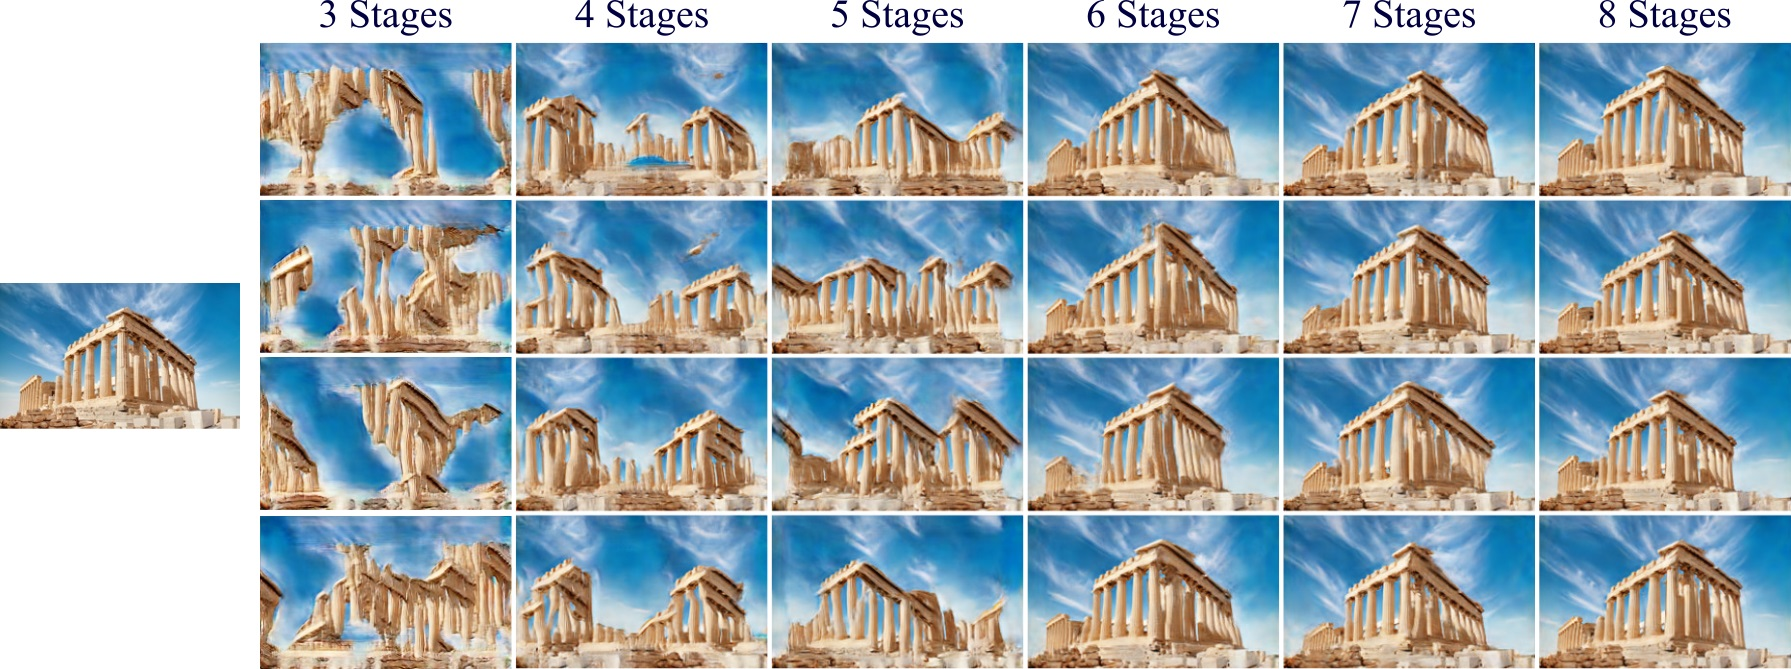 Trained Stages Visualization